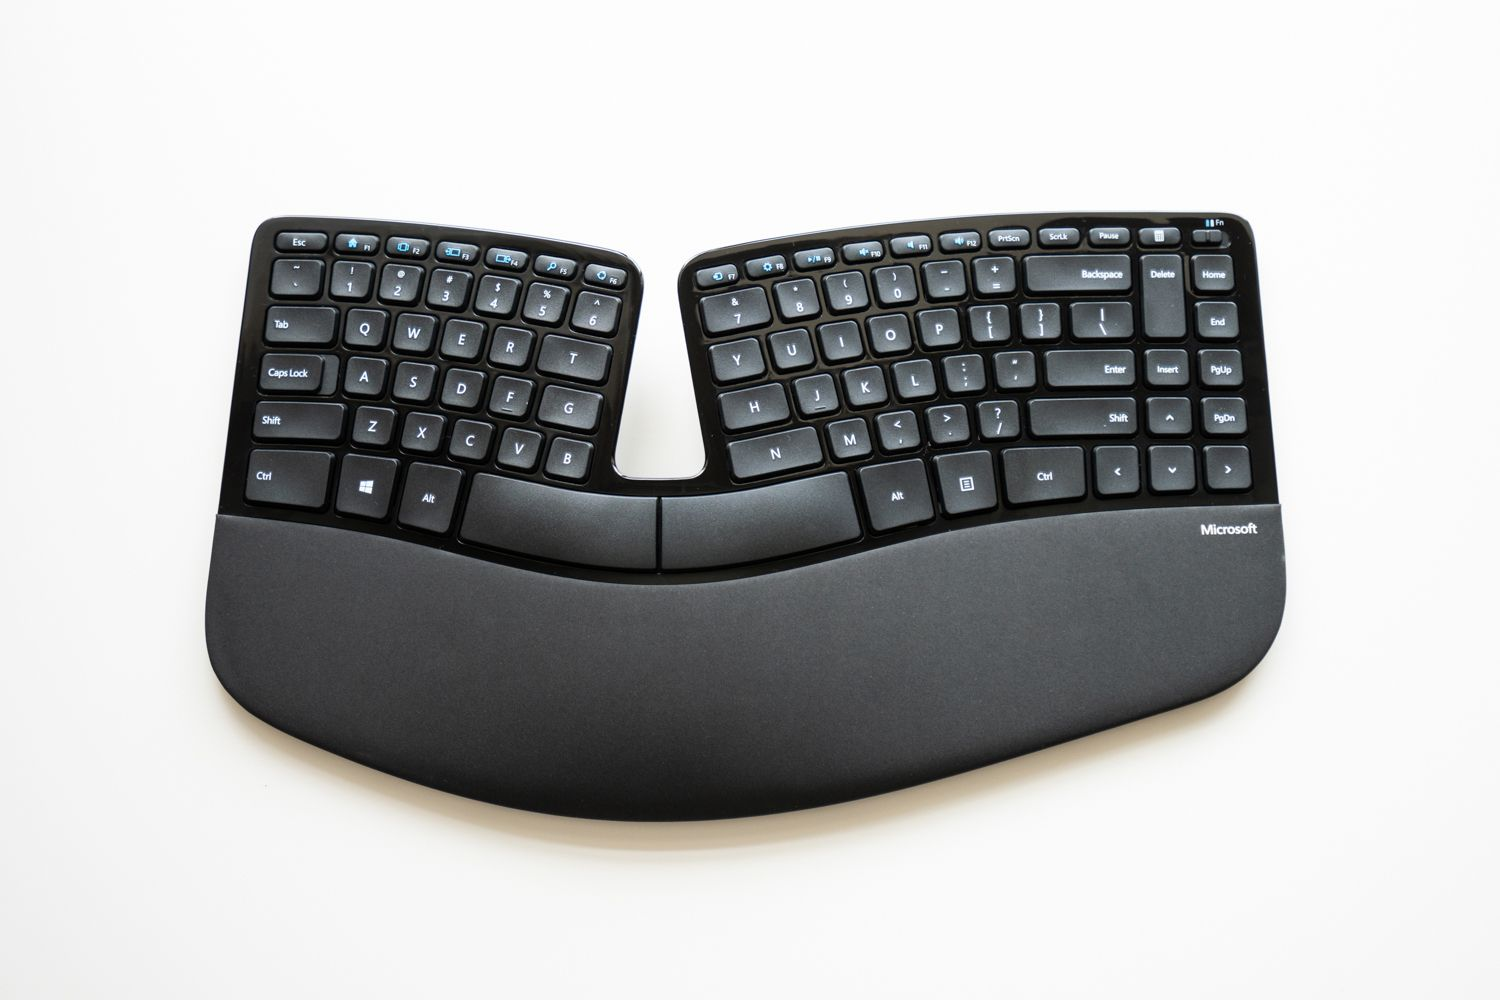 6a65c38ad58 The 11 Best Computer Keyboards of 2019